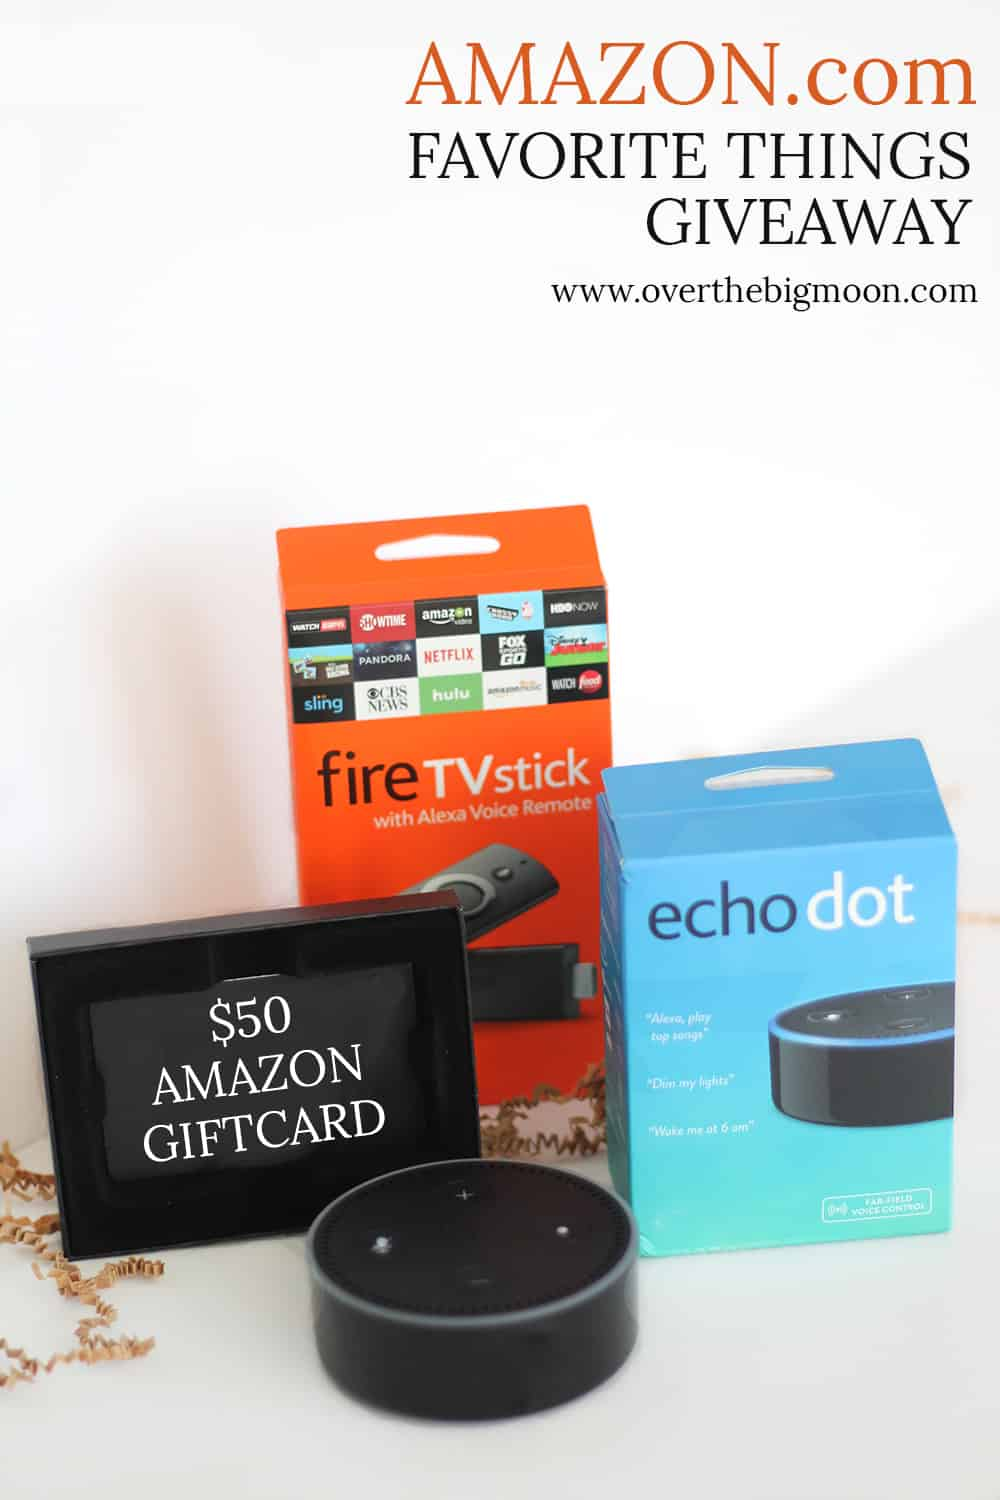 Amazon Giveaway - Amazon Echo Dot, Amazon Fire Stick and $50 Amazon Gift Card!